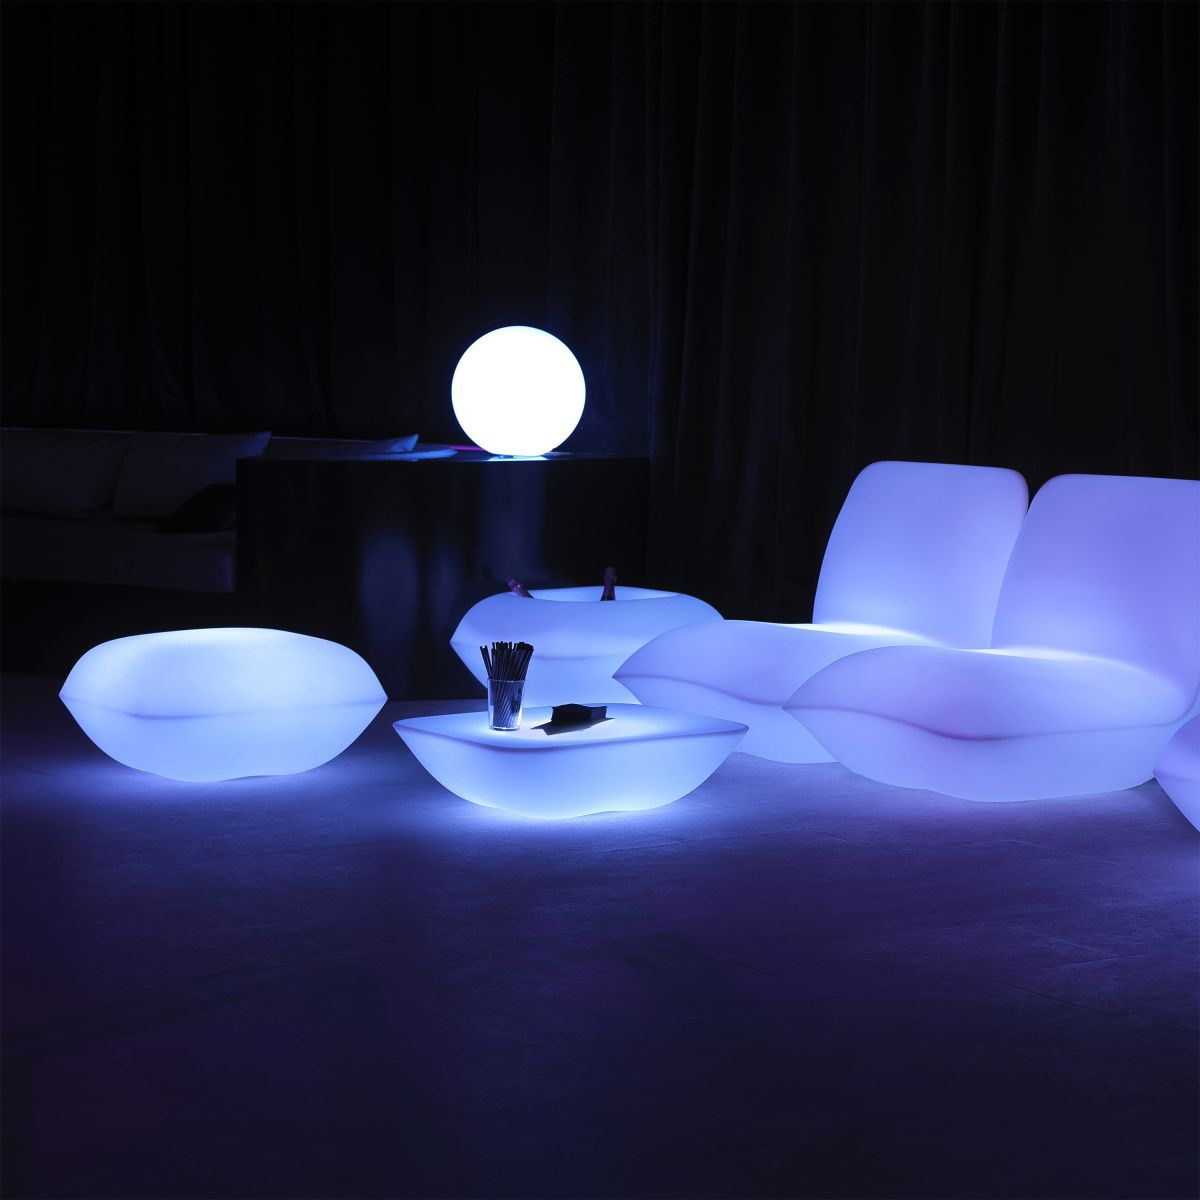 table basse lumineuse led pillow vondom zendart design. Black Bedroom Furniture Sets. Home Design Ideas